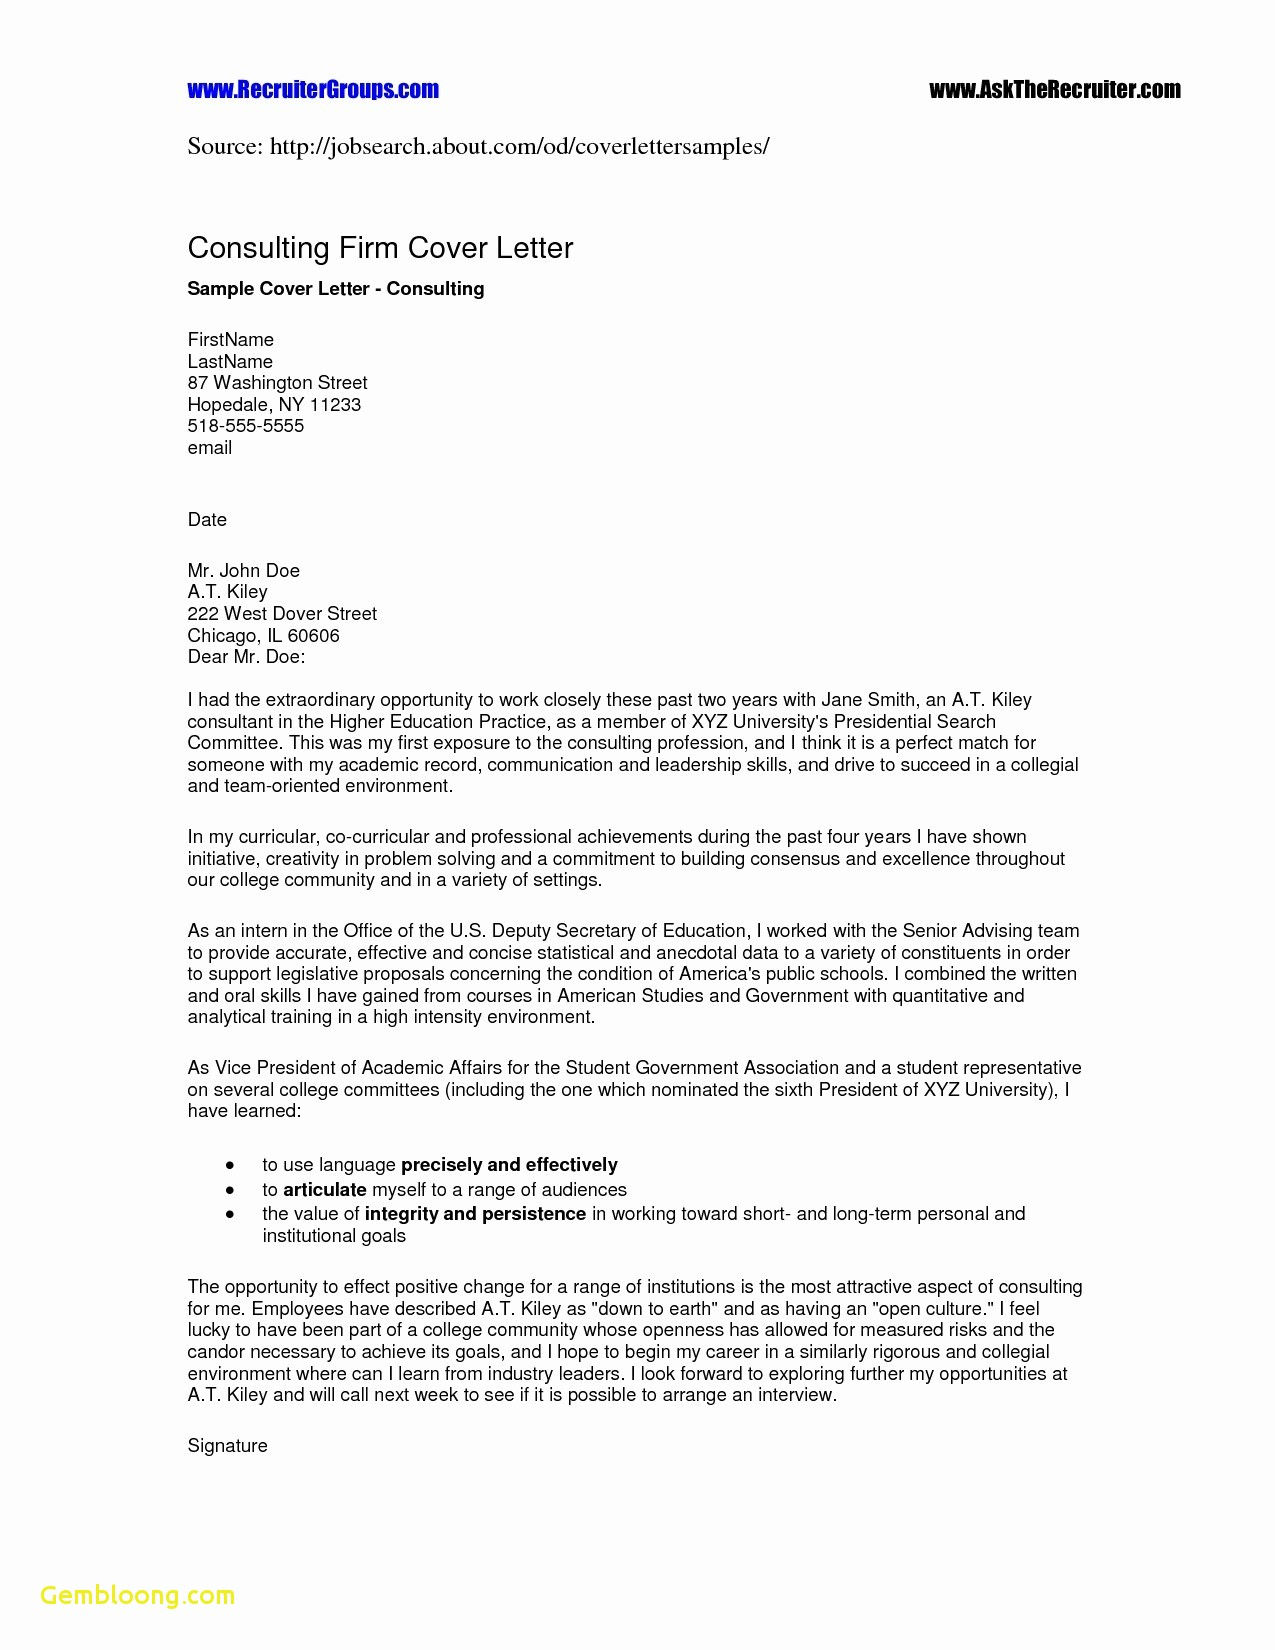 relocation cover letter template relocation cover letter template free samples letter 24266 | cover letter relocation due to spouse teacher cover letter template of relocation cover letter template free